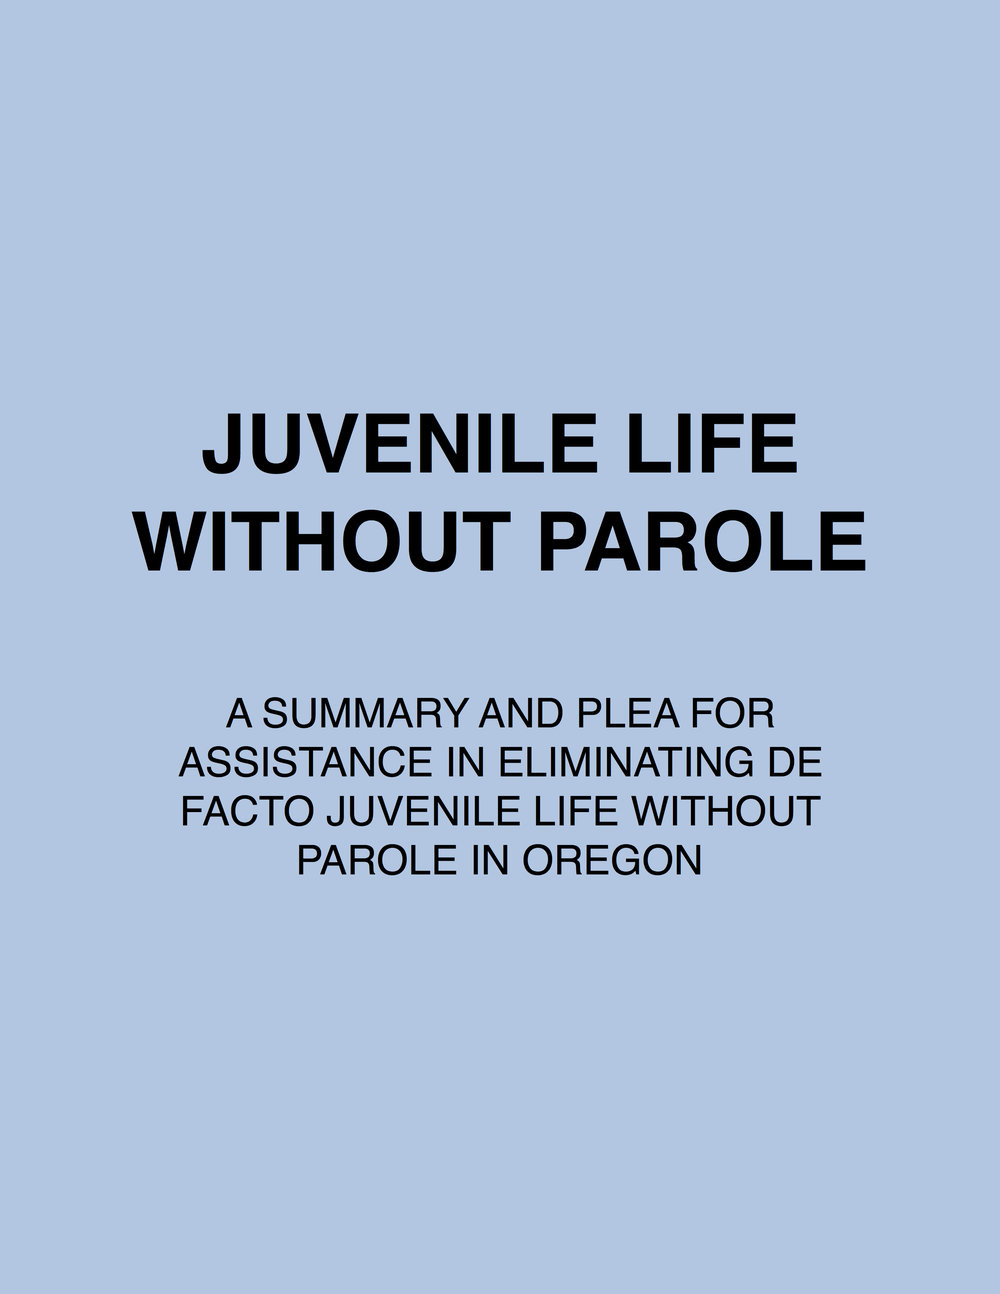 01_juvenile-life-without-parole_cover.jpg